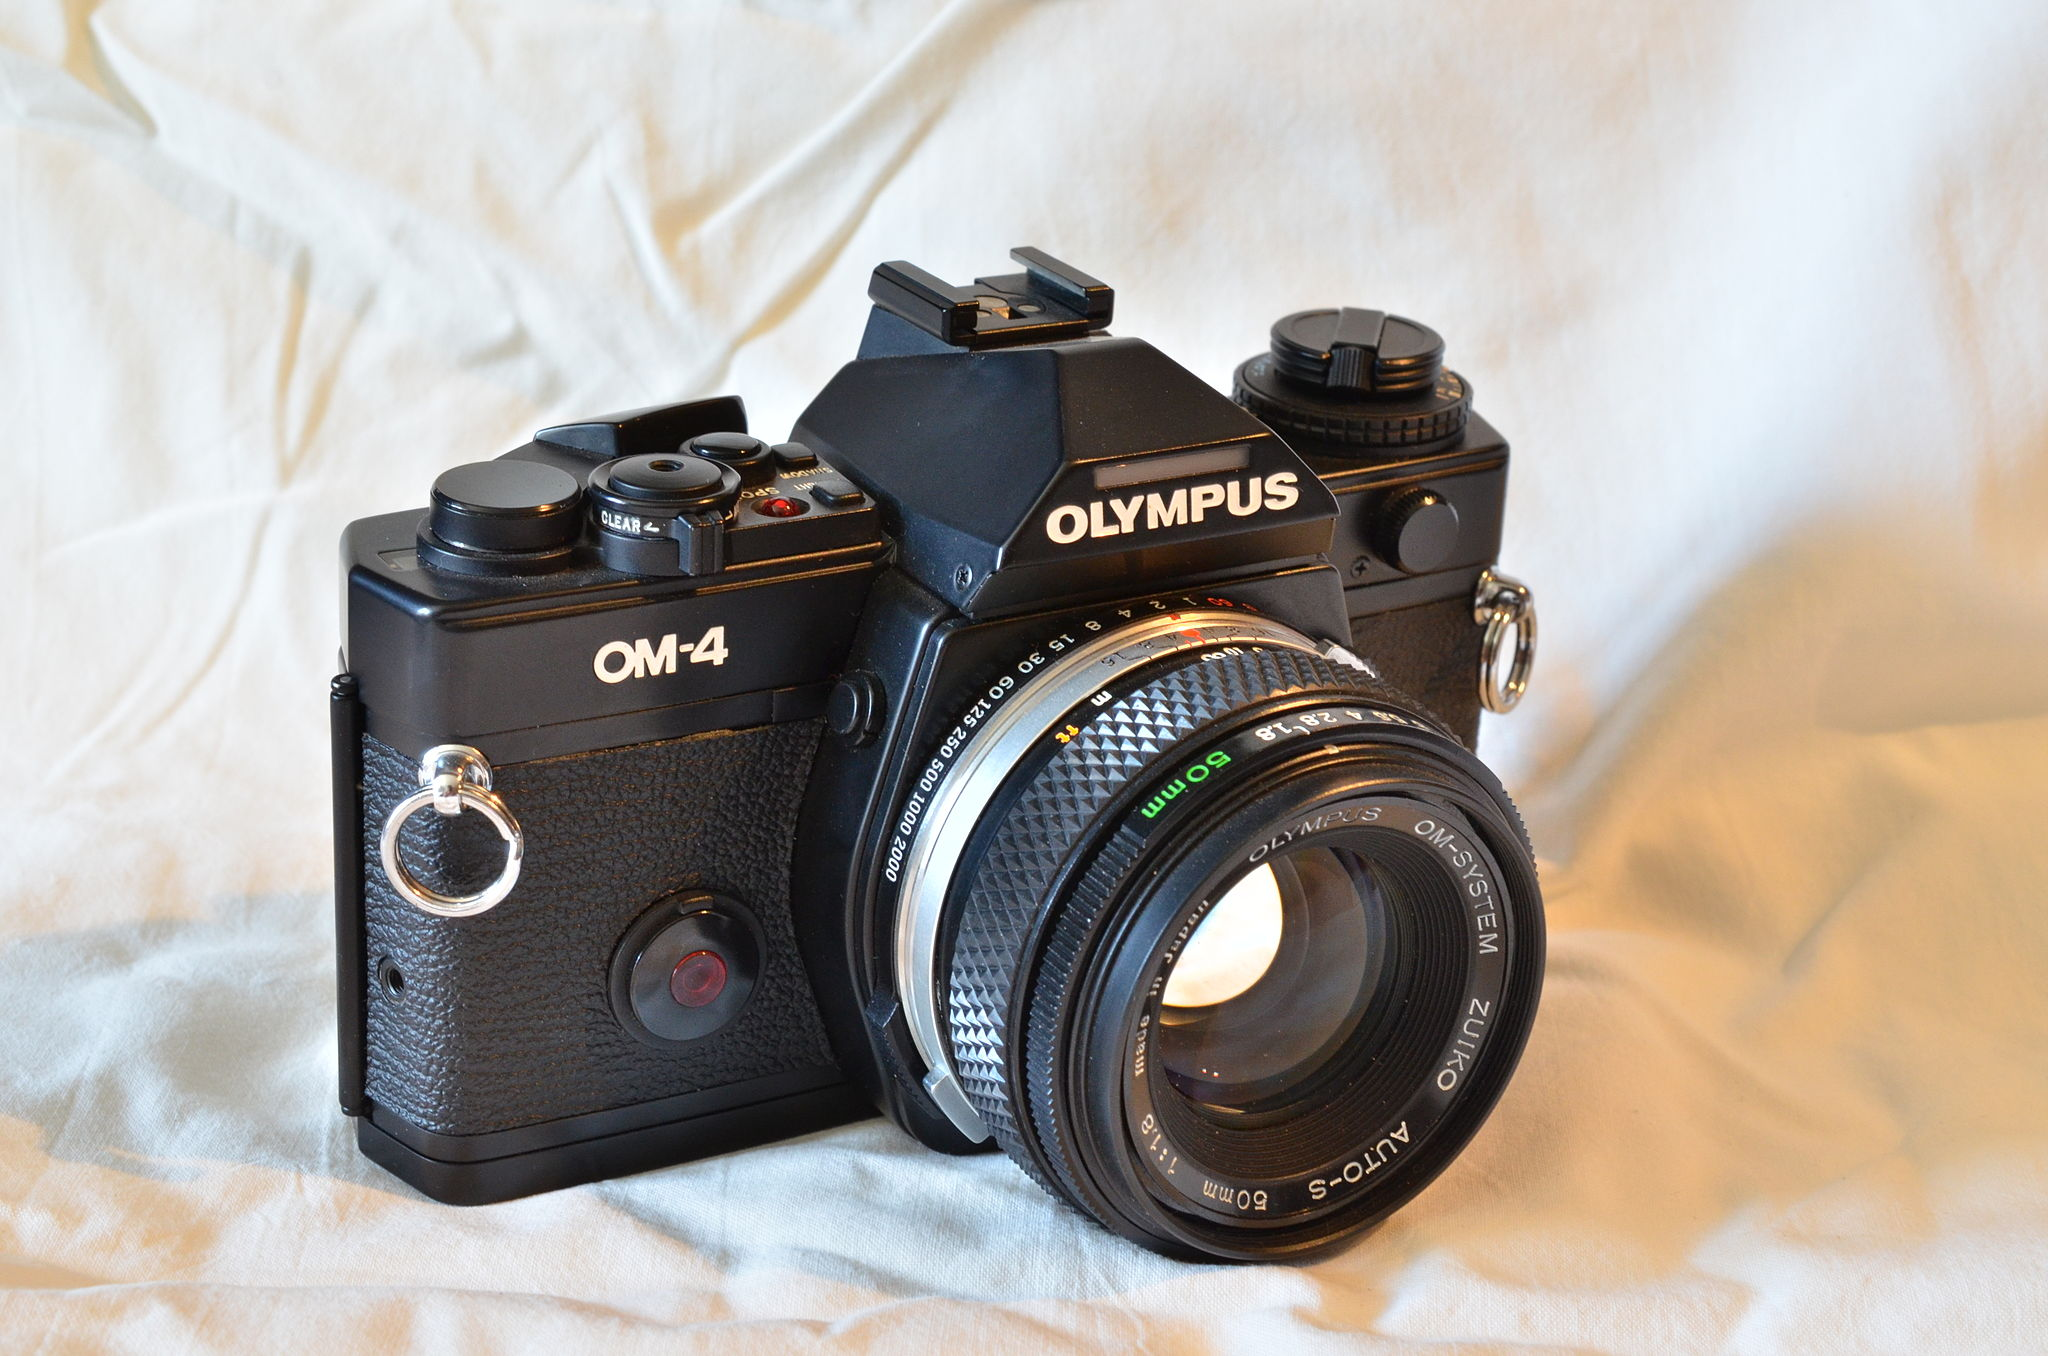 Olympus OM-4 (Pic: Daft Racer/Wikimedia Commons)